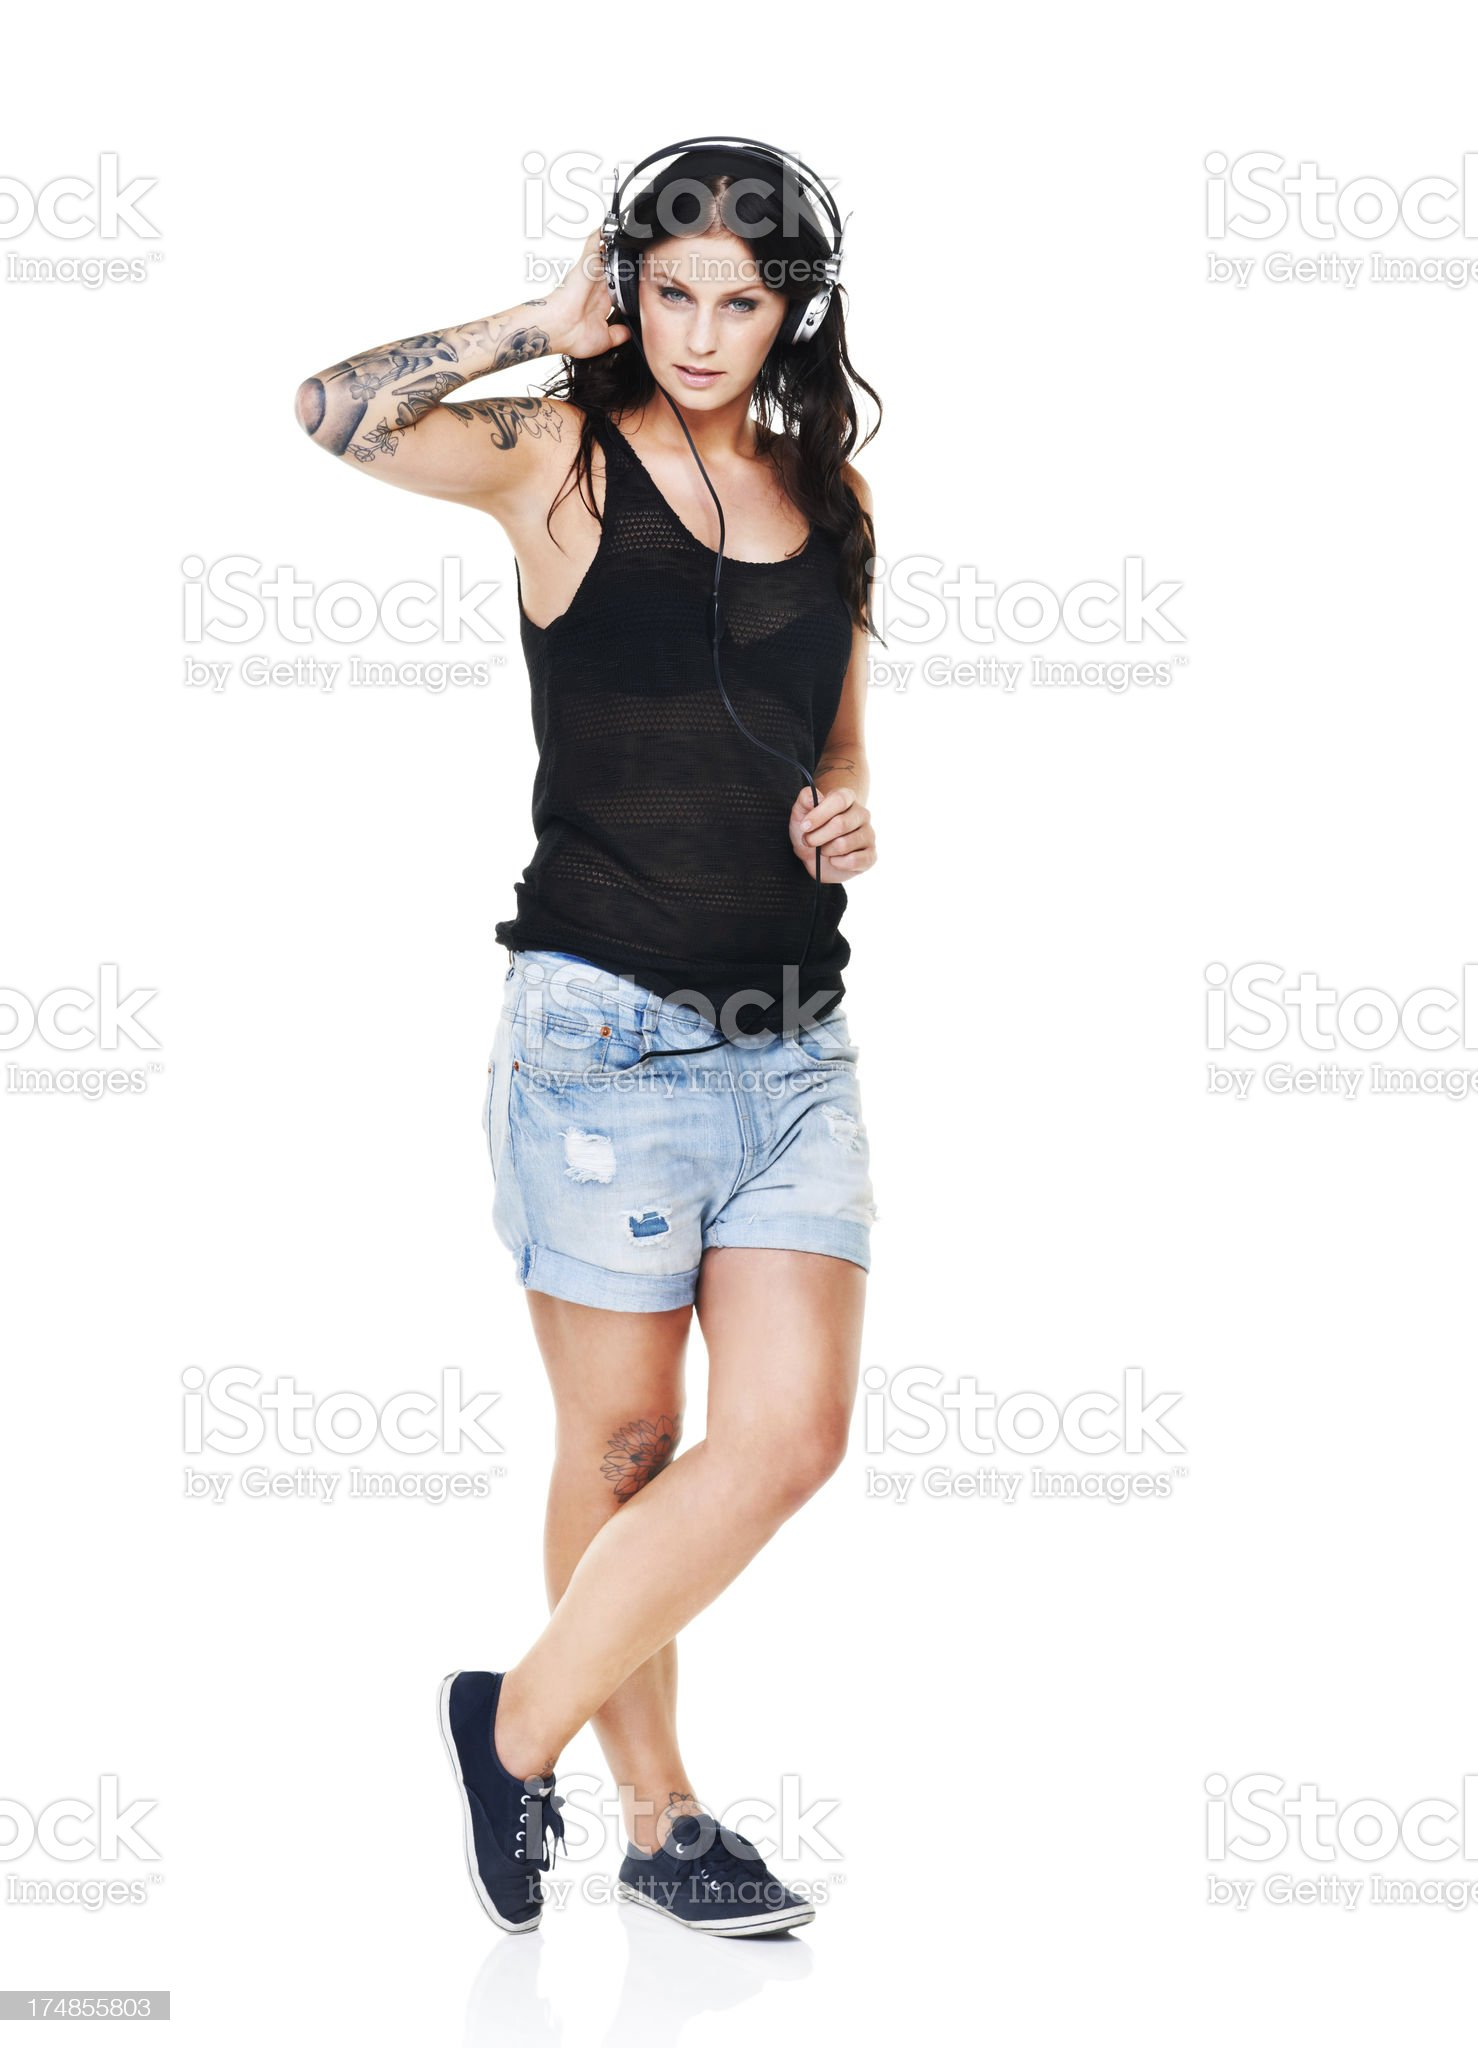 Serious about her music and tattoos! royalty-free stock photo